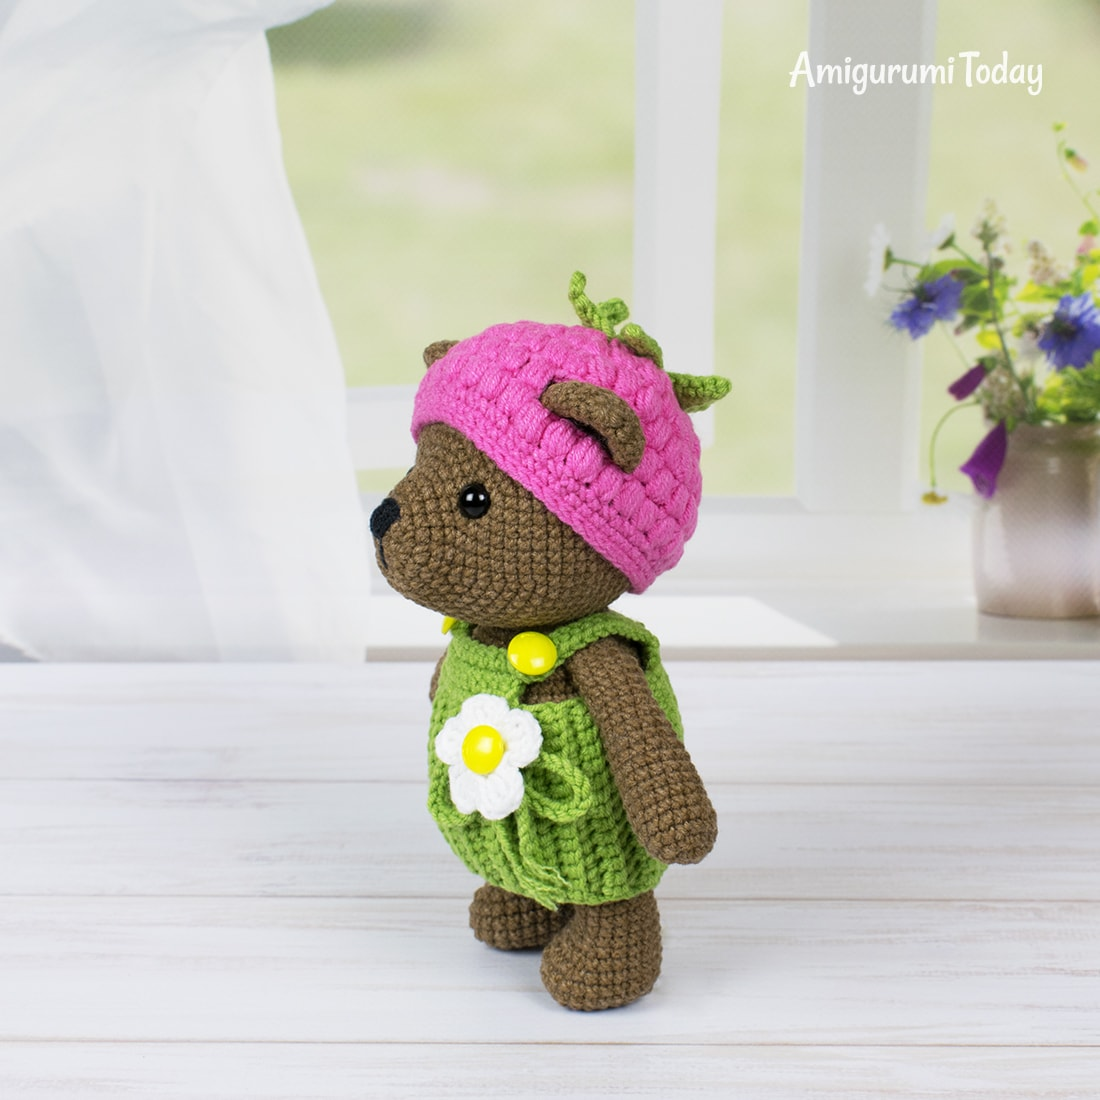 Amigurumi Raspberry Bear - Free crochet pattern by Amigurumi Today